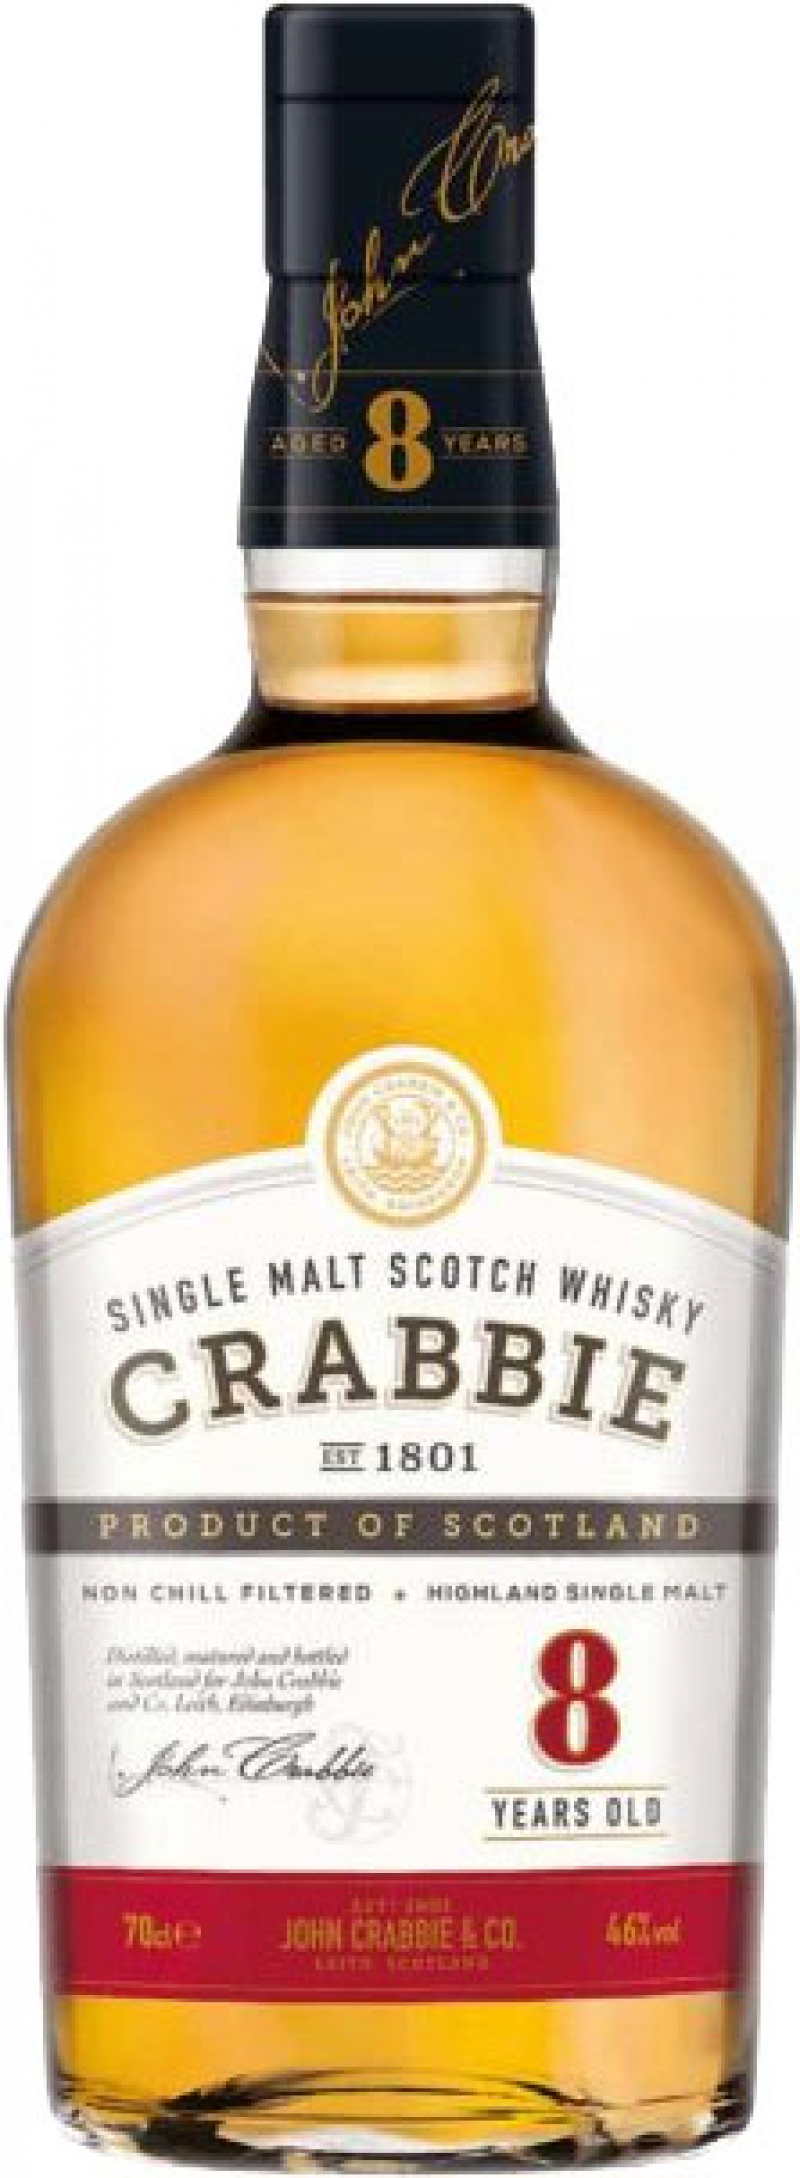 Crabbies - 8 Year Old (70cl Bottle)